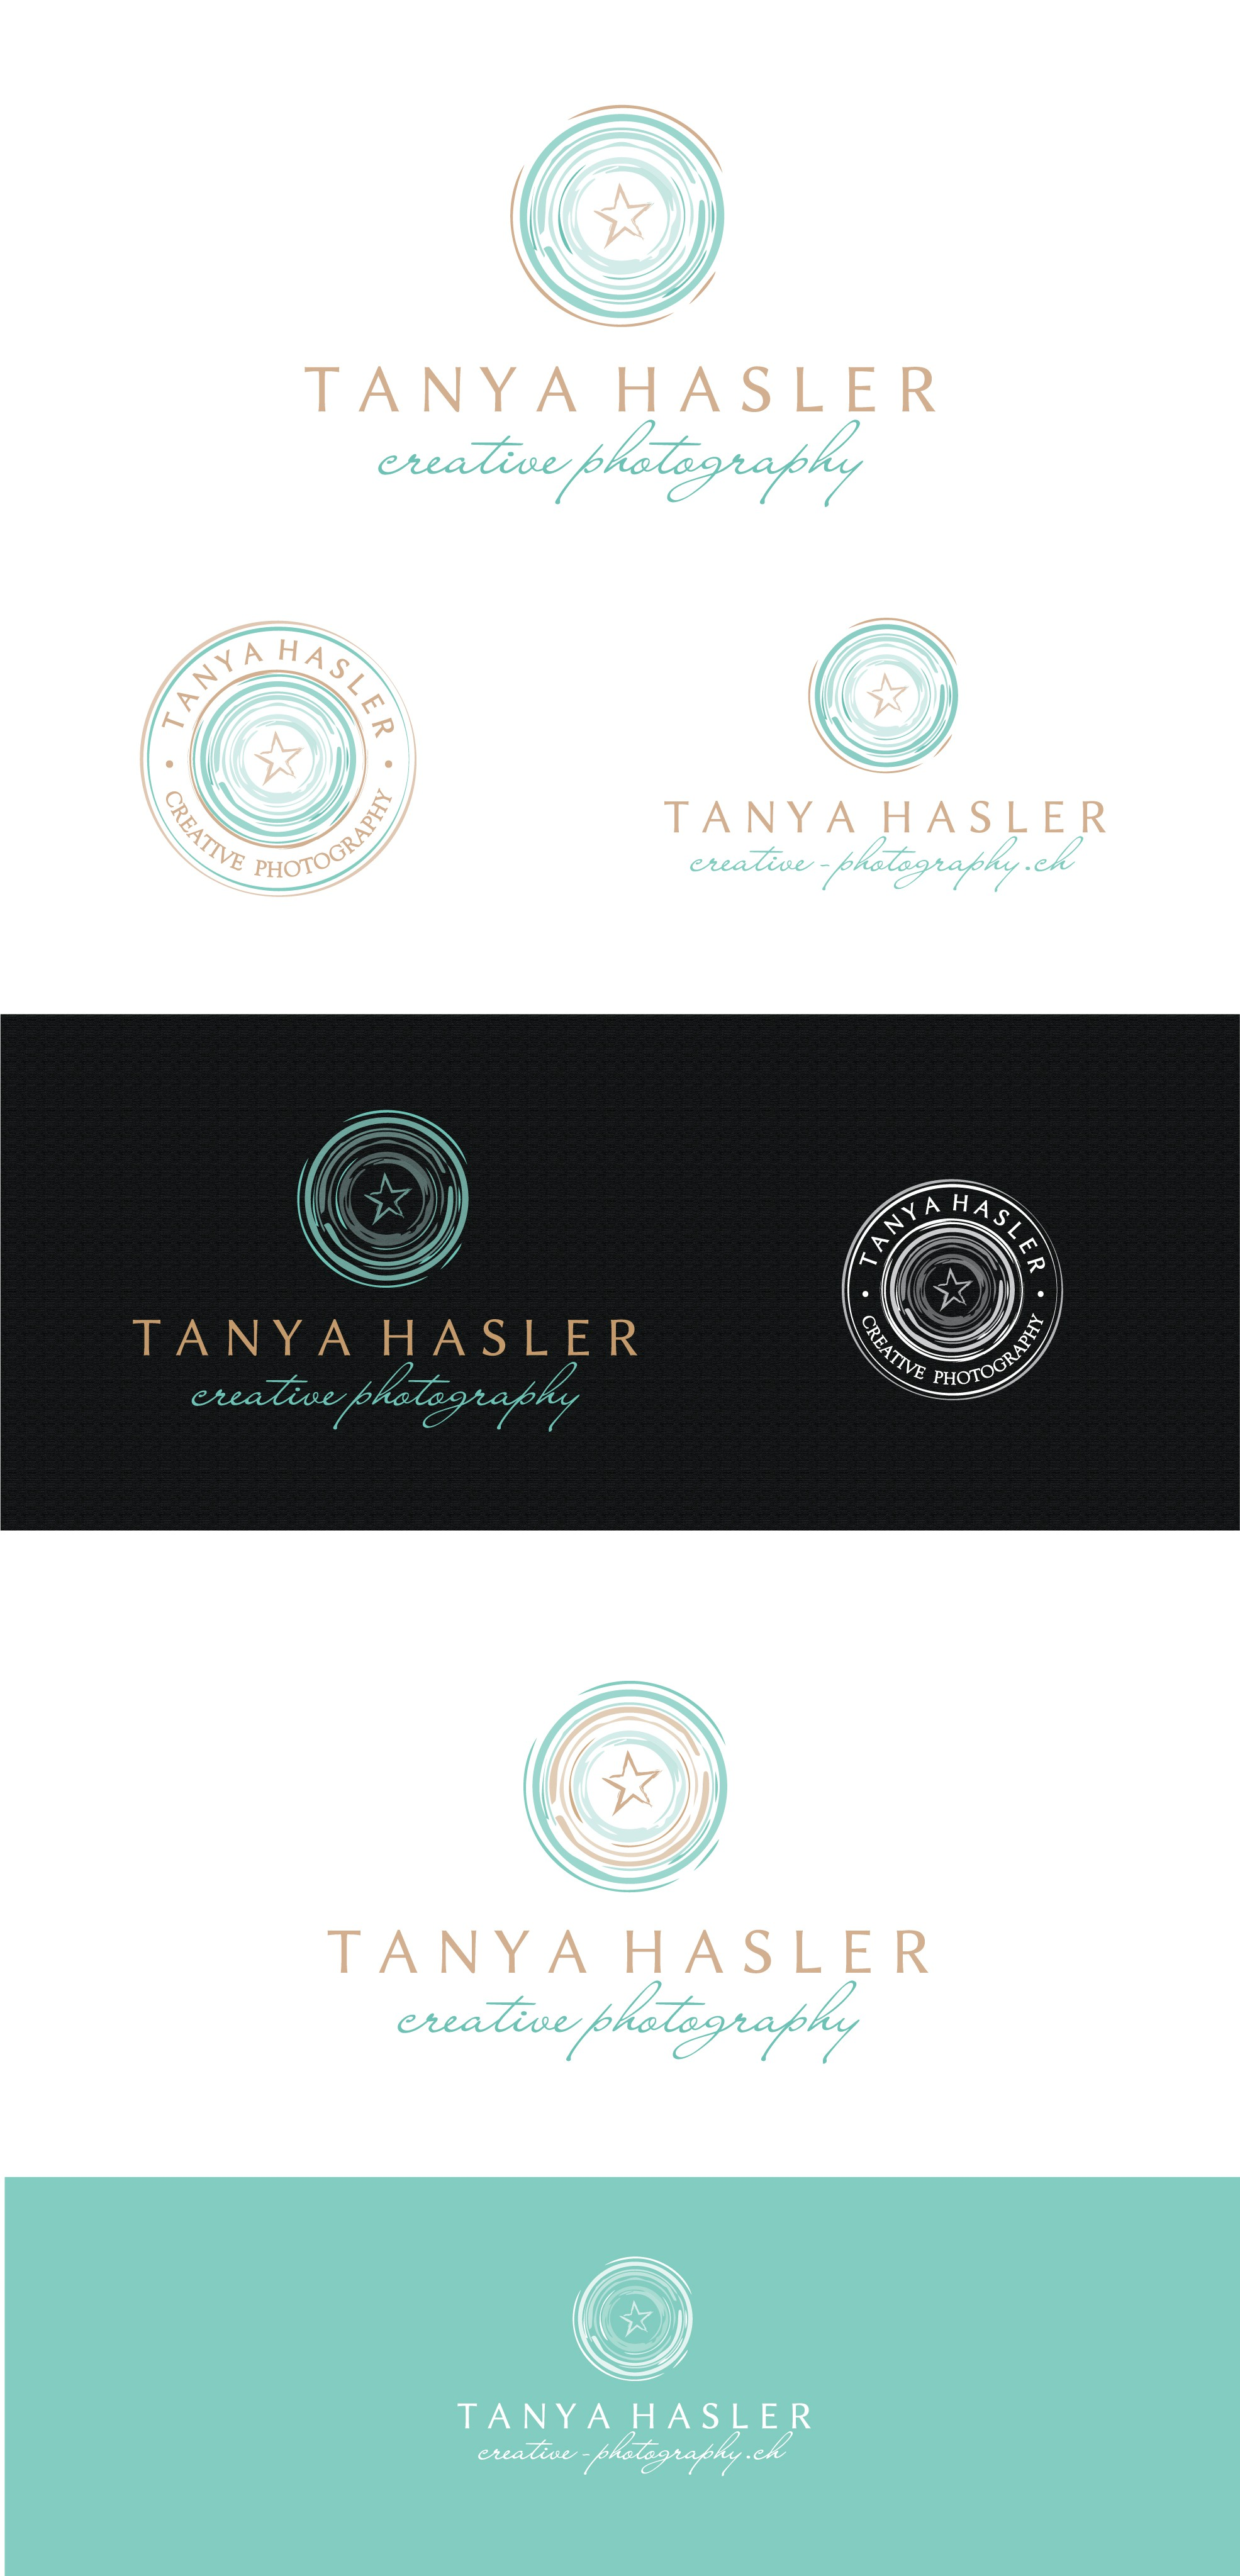 create a creative logo for a professional photographer